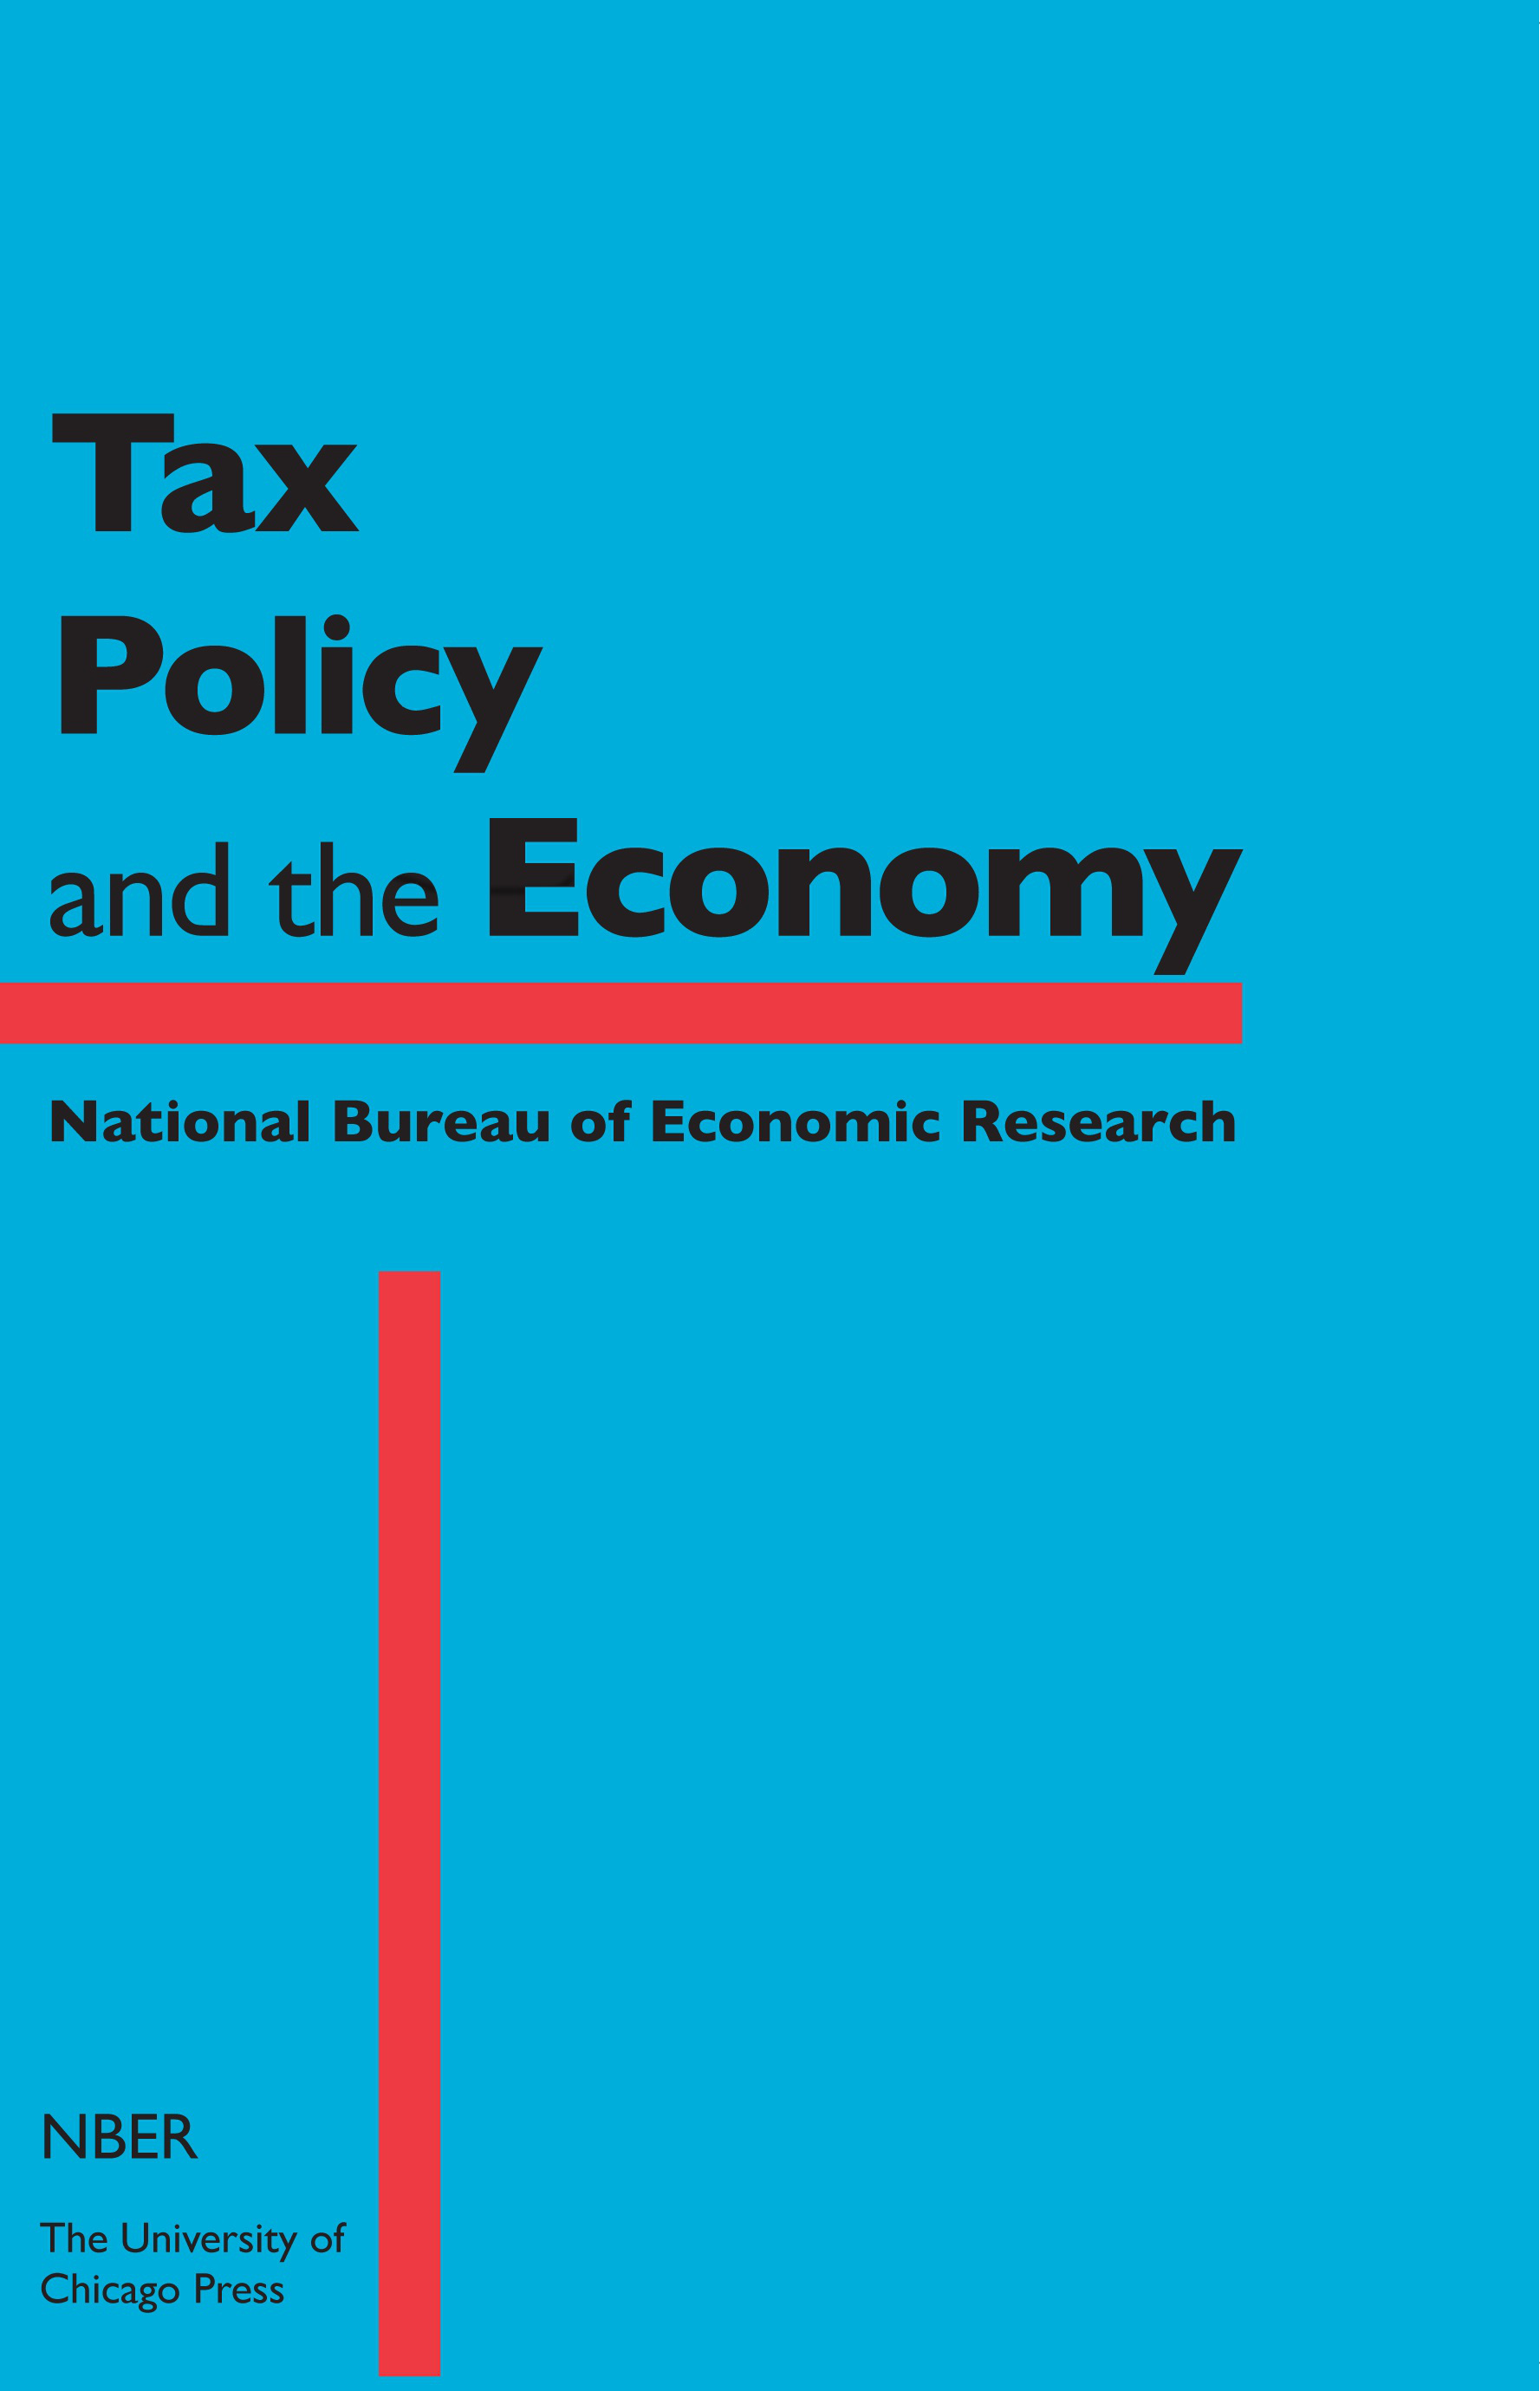 Tax Policy and the Economy, Volume 32